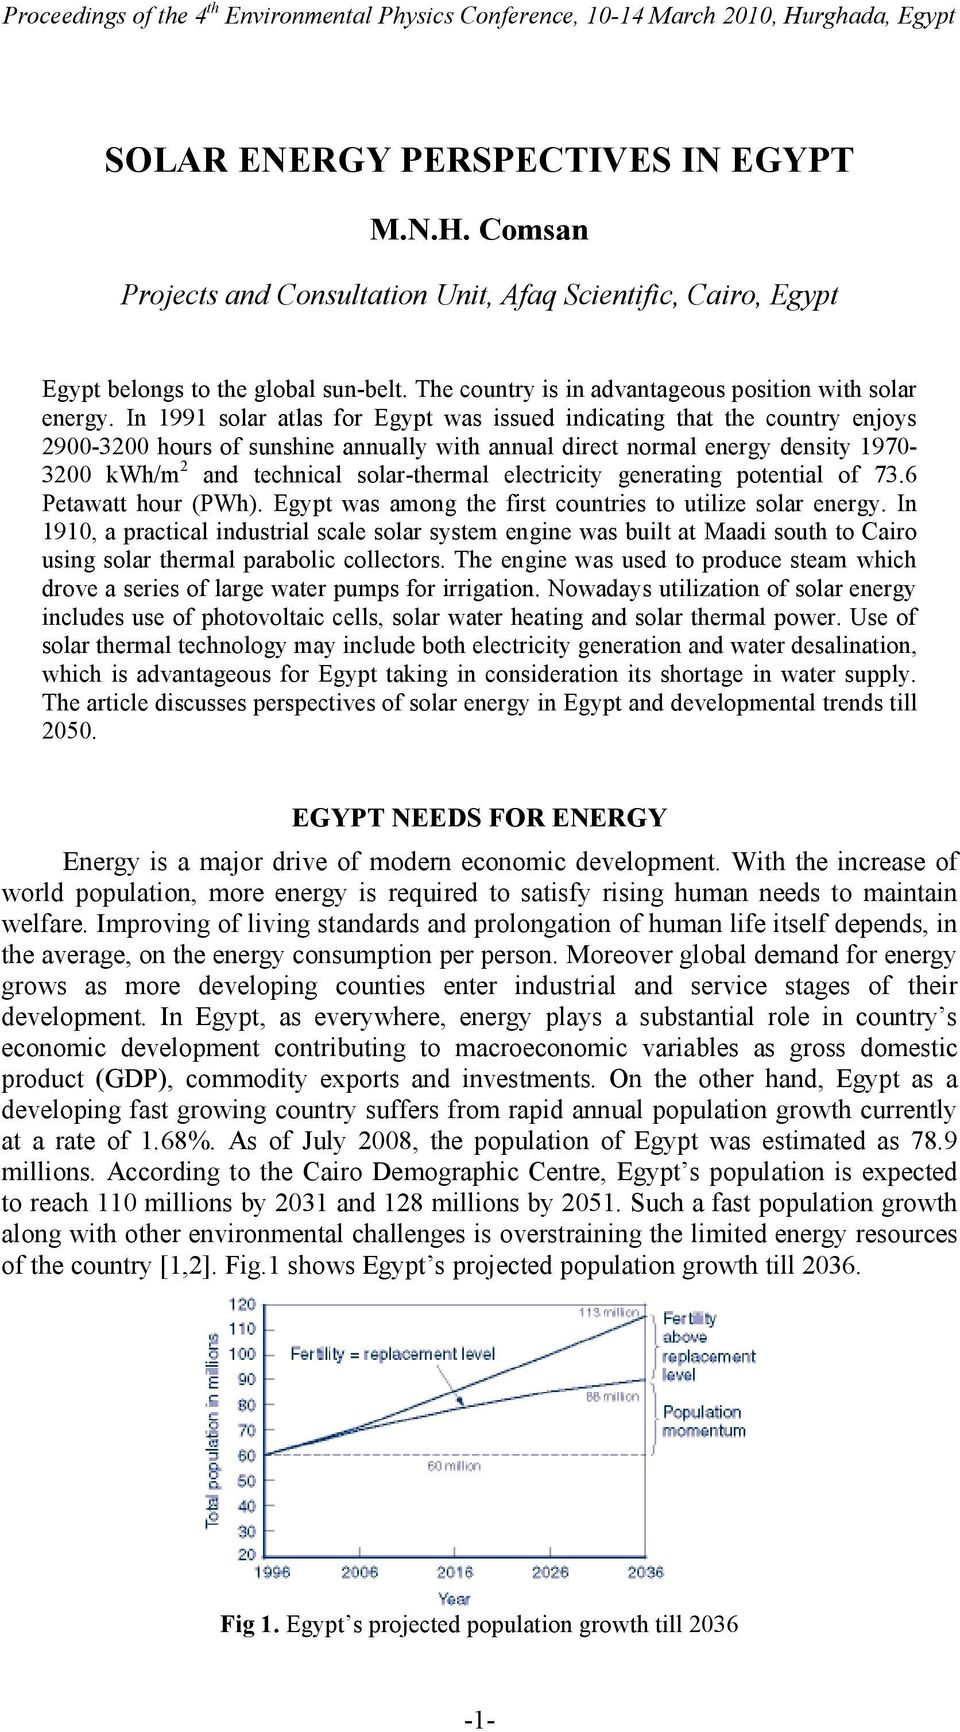 In 1991 solar atlas for Egypt was issued indicating that the country enjoys 2900-3200 hours of sunshine annually with annual direct normal energy density 1970-3200 kwh/m 2 and technical solar-thermal